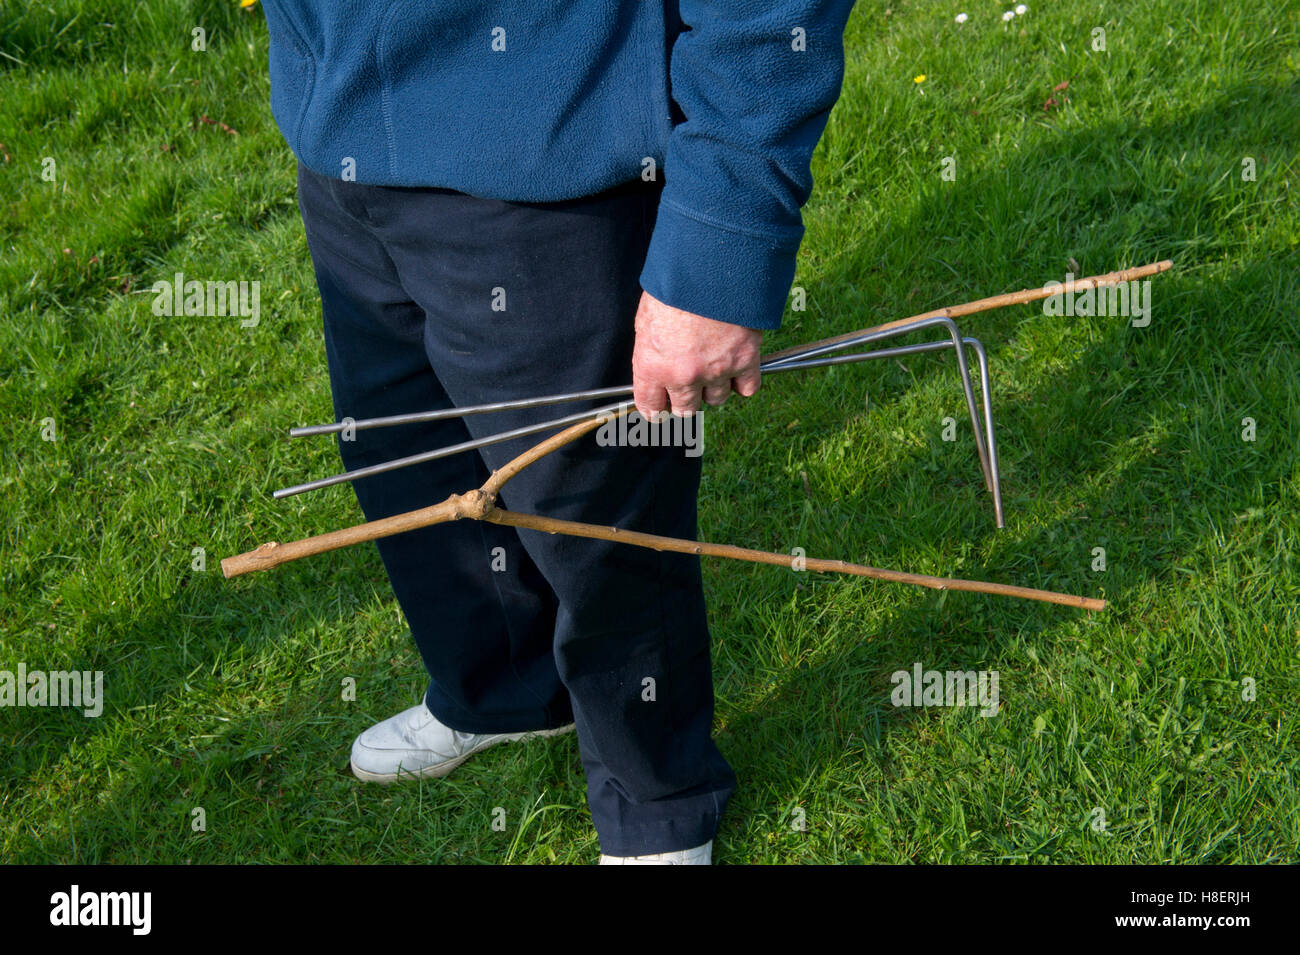 how to find water with dowsing rods